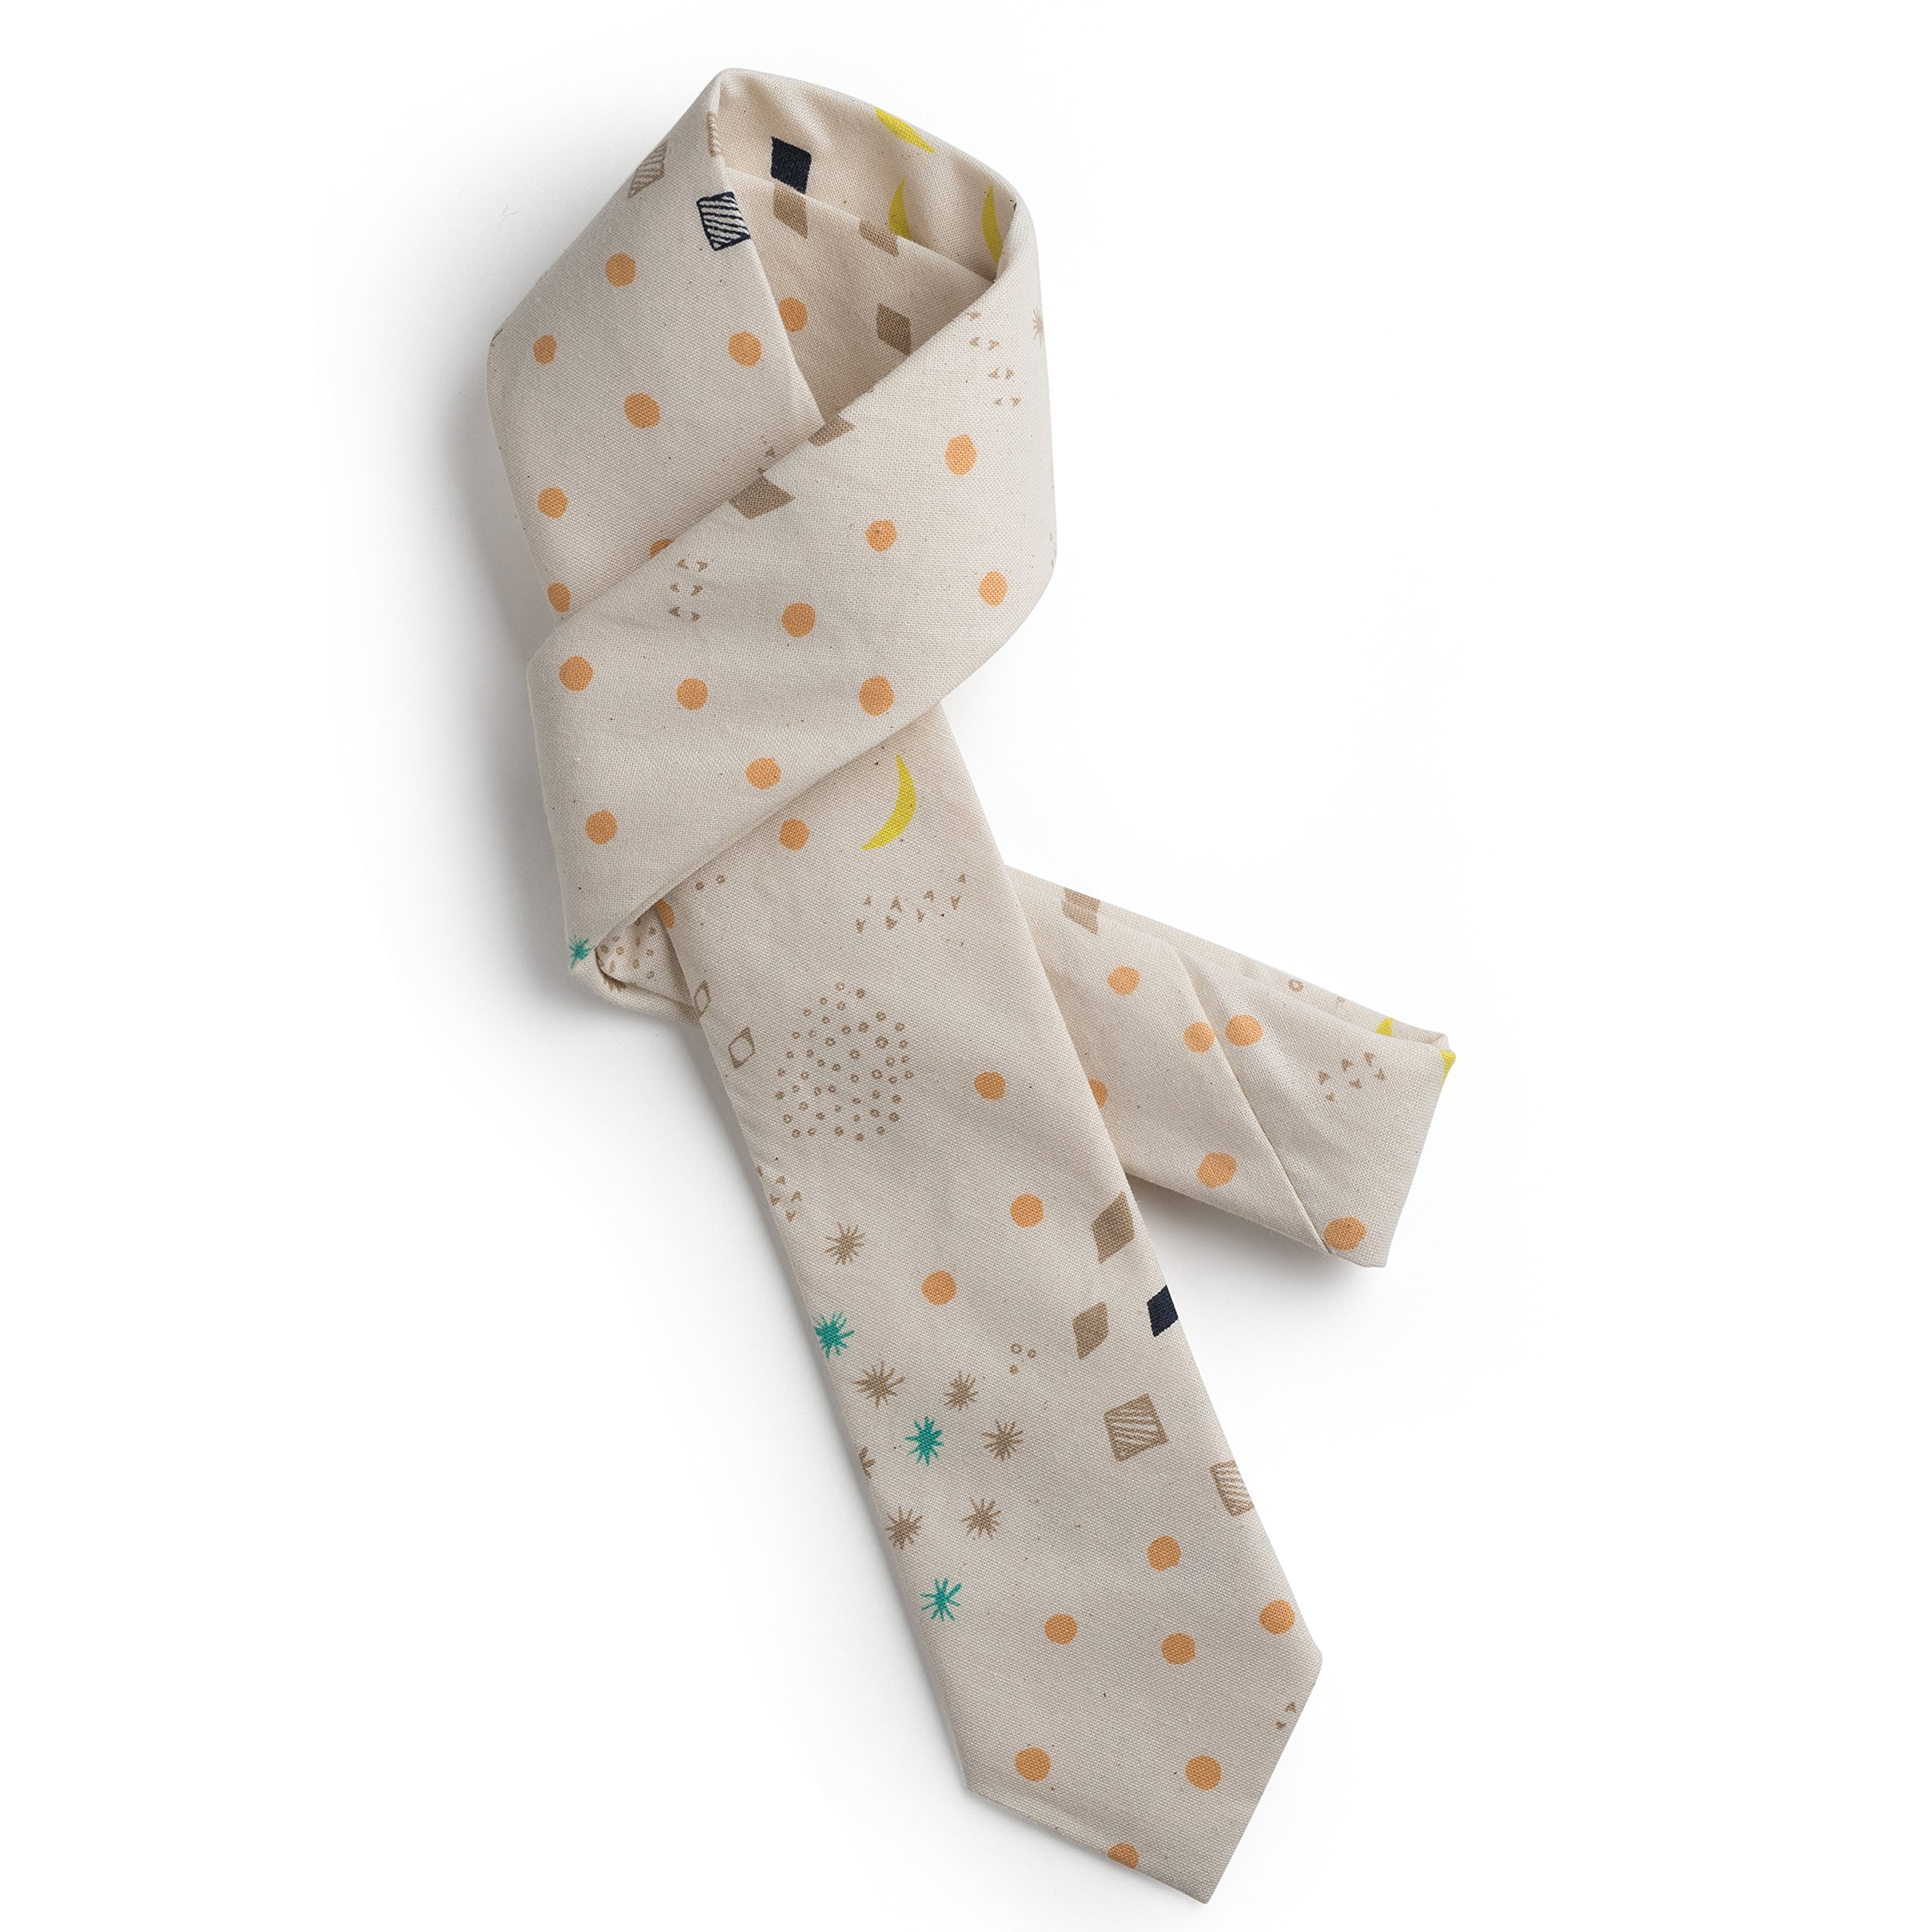 Jacqueline & Jac Moon and Stars Boys Necktie – Narrow Design for Kids Ages 5-12 – Unique, Trendy Design for Festive/Formal Occasions